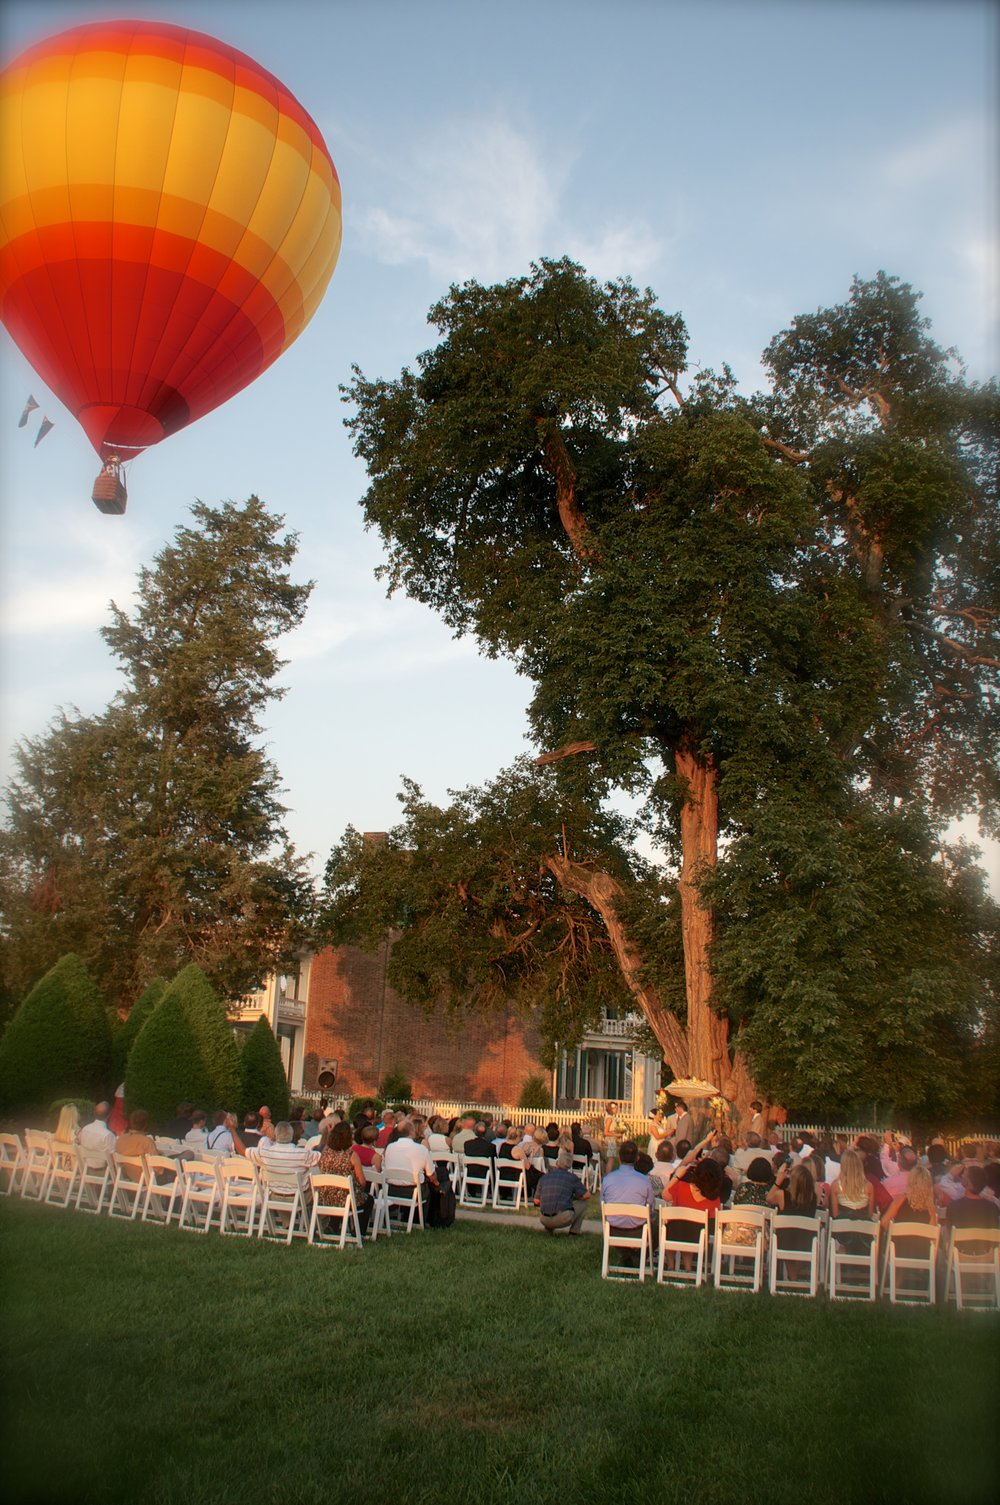 Getting a ballon over your ceremony at just the right moment takes real coordination.